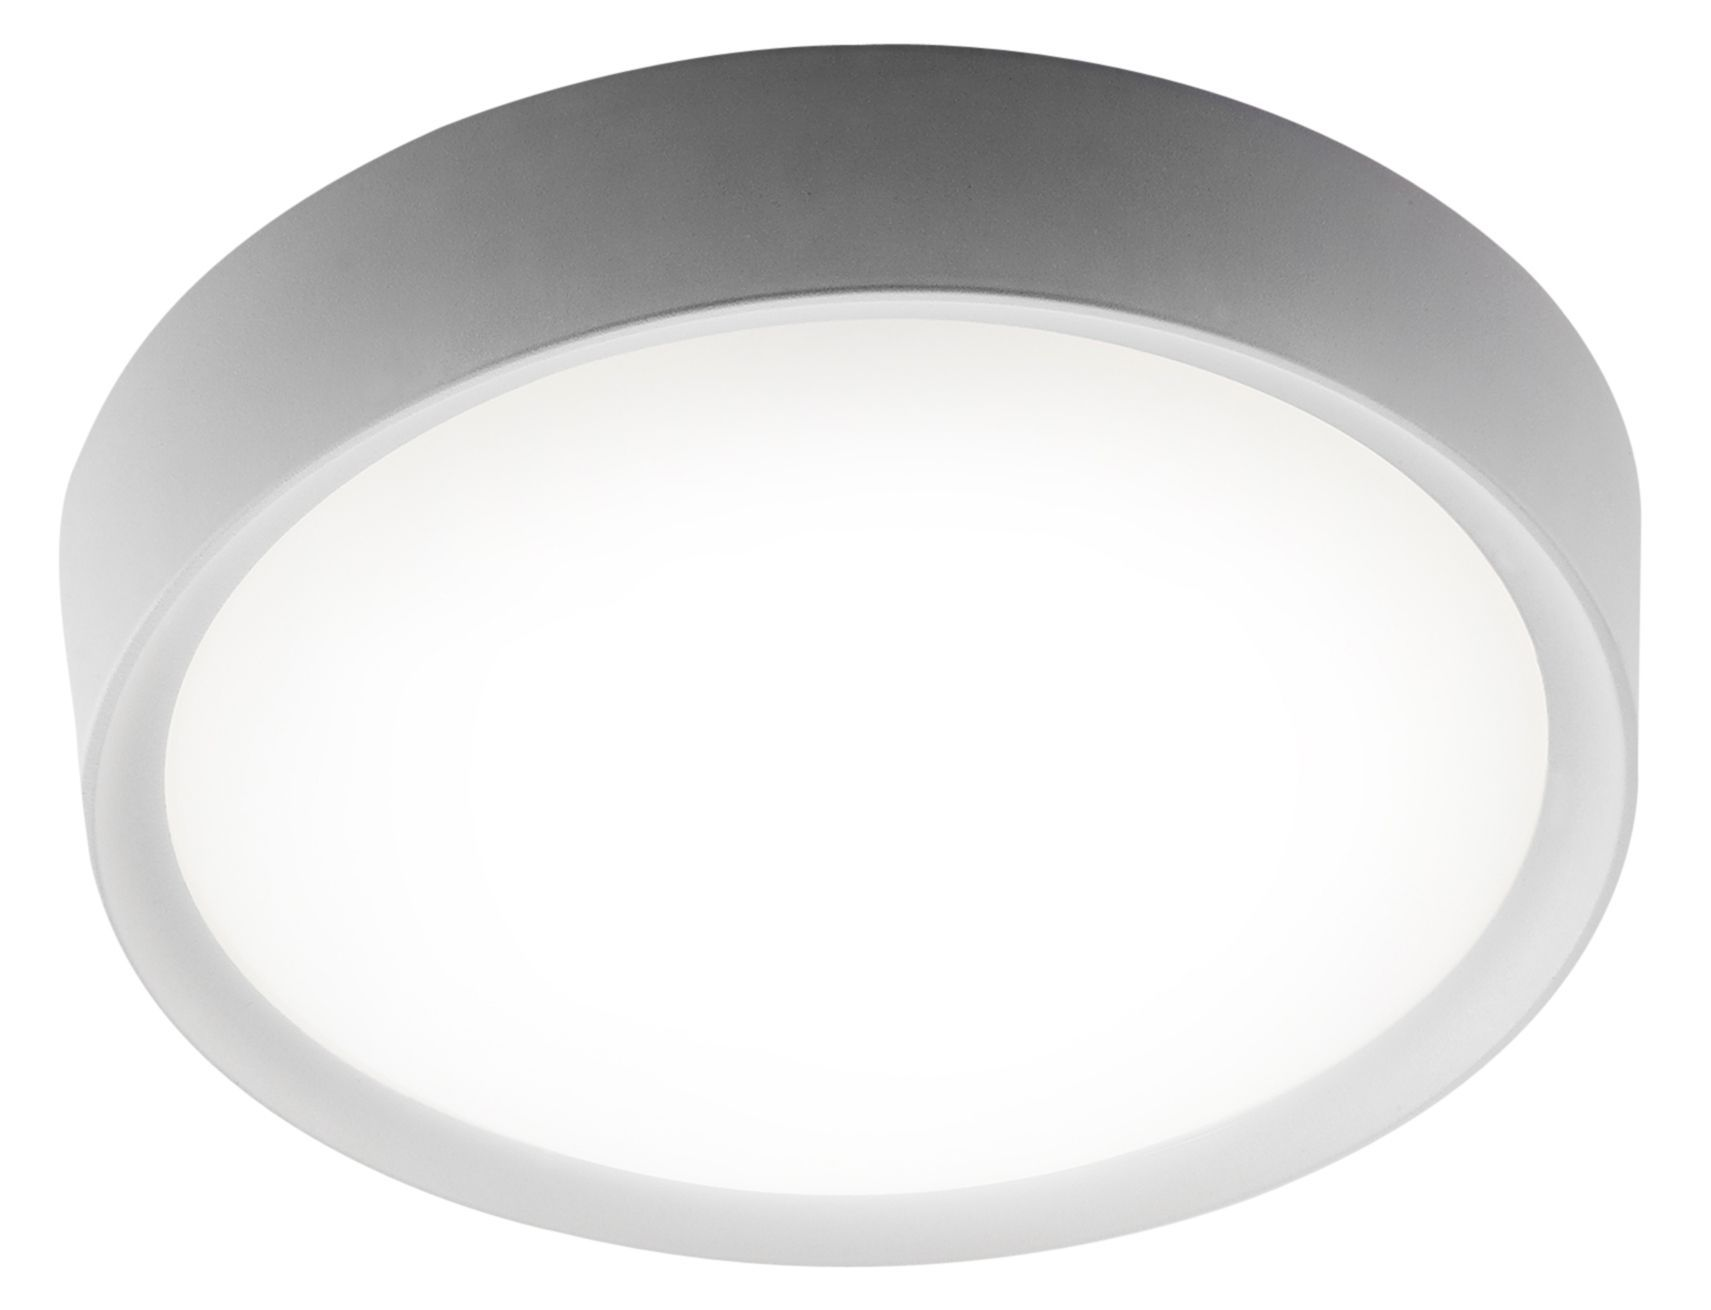 reputable site ac12f ecfbc Ruth White Frosted Bathroom Flush Light | Bathroom | Flush ...